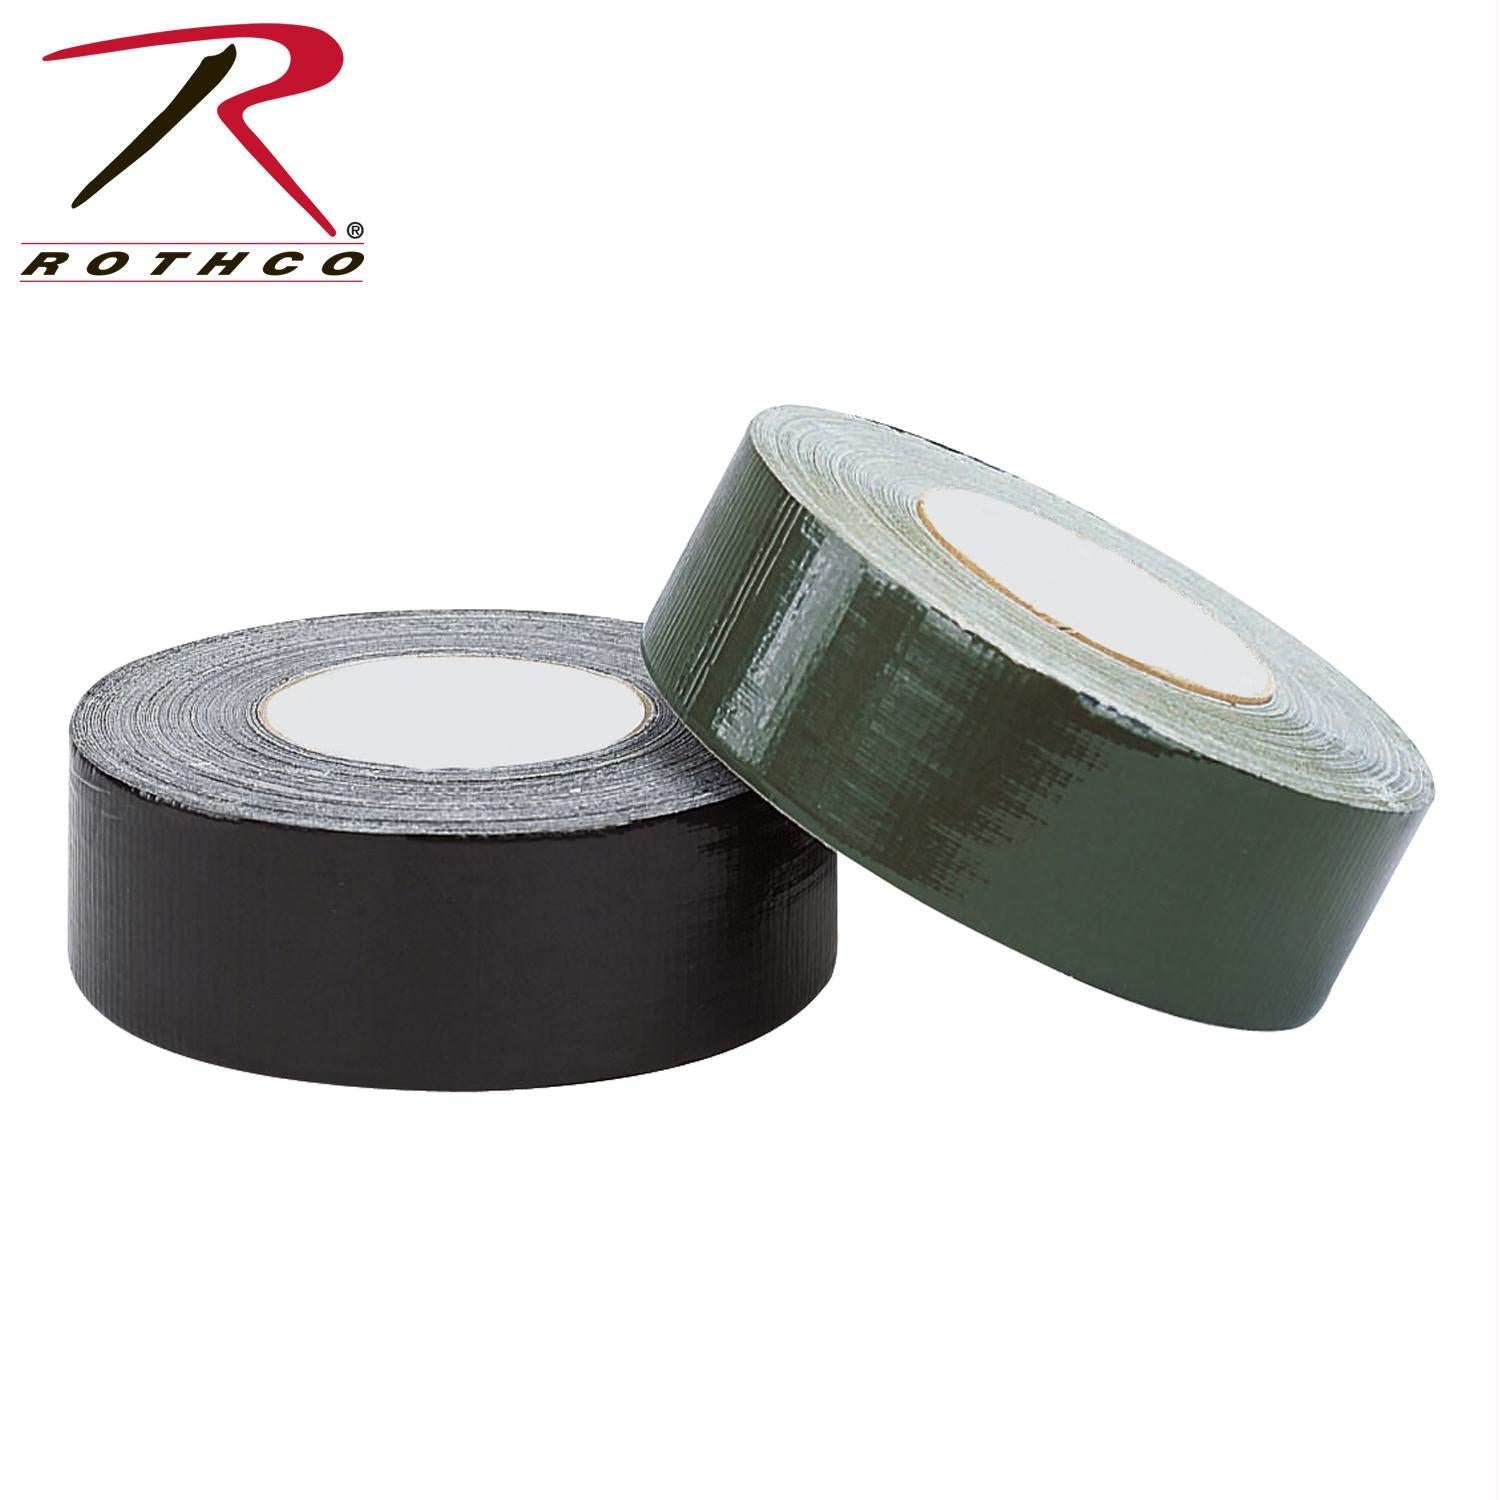 Rothco Military Duct Tape AKA 100 Mile An Hour Tape - Olive Drab